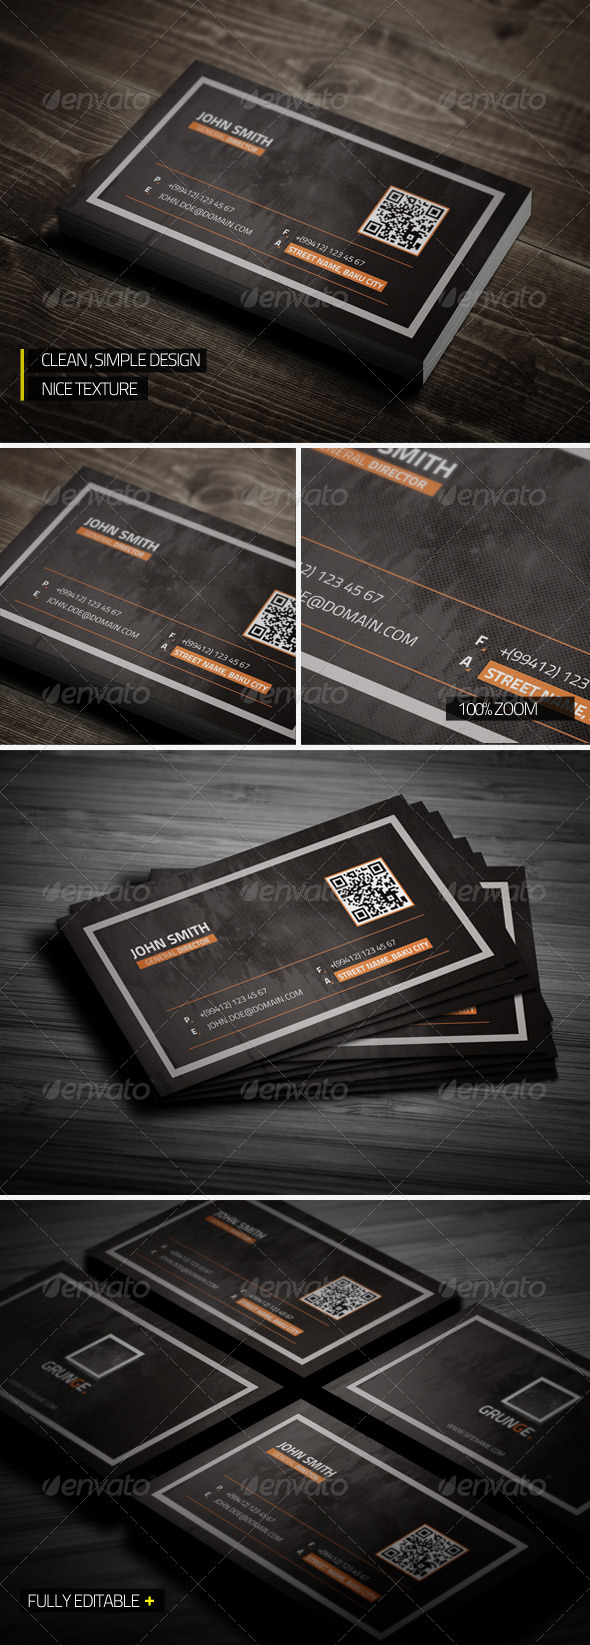 GraphicRiver Grunge Business Card 3669590